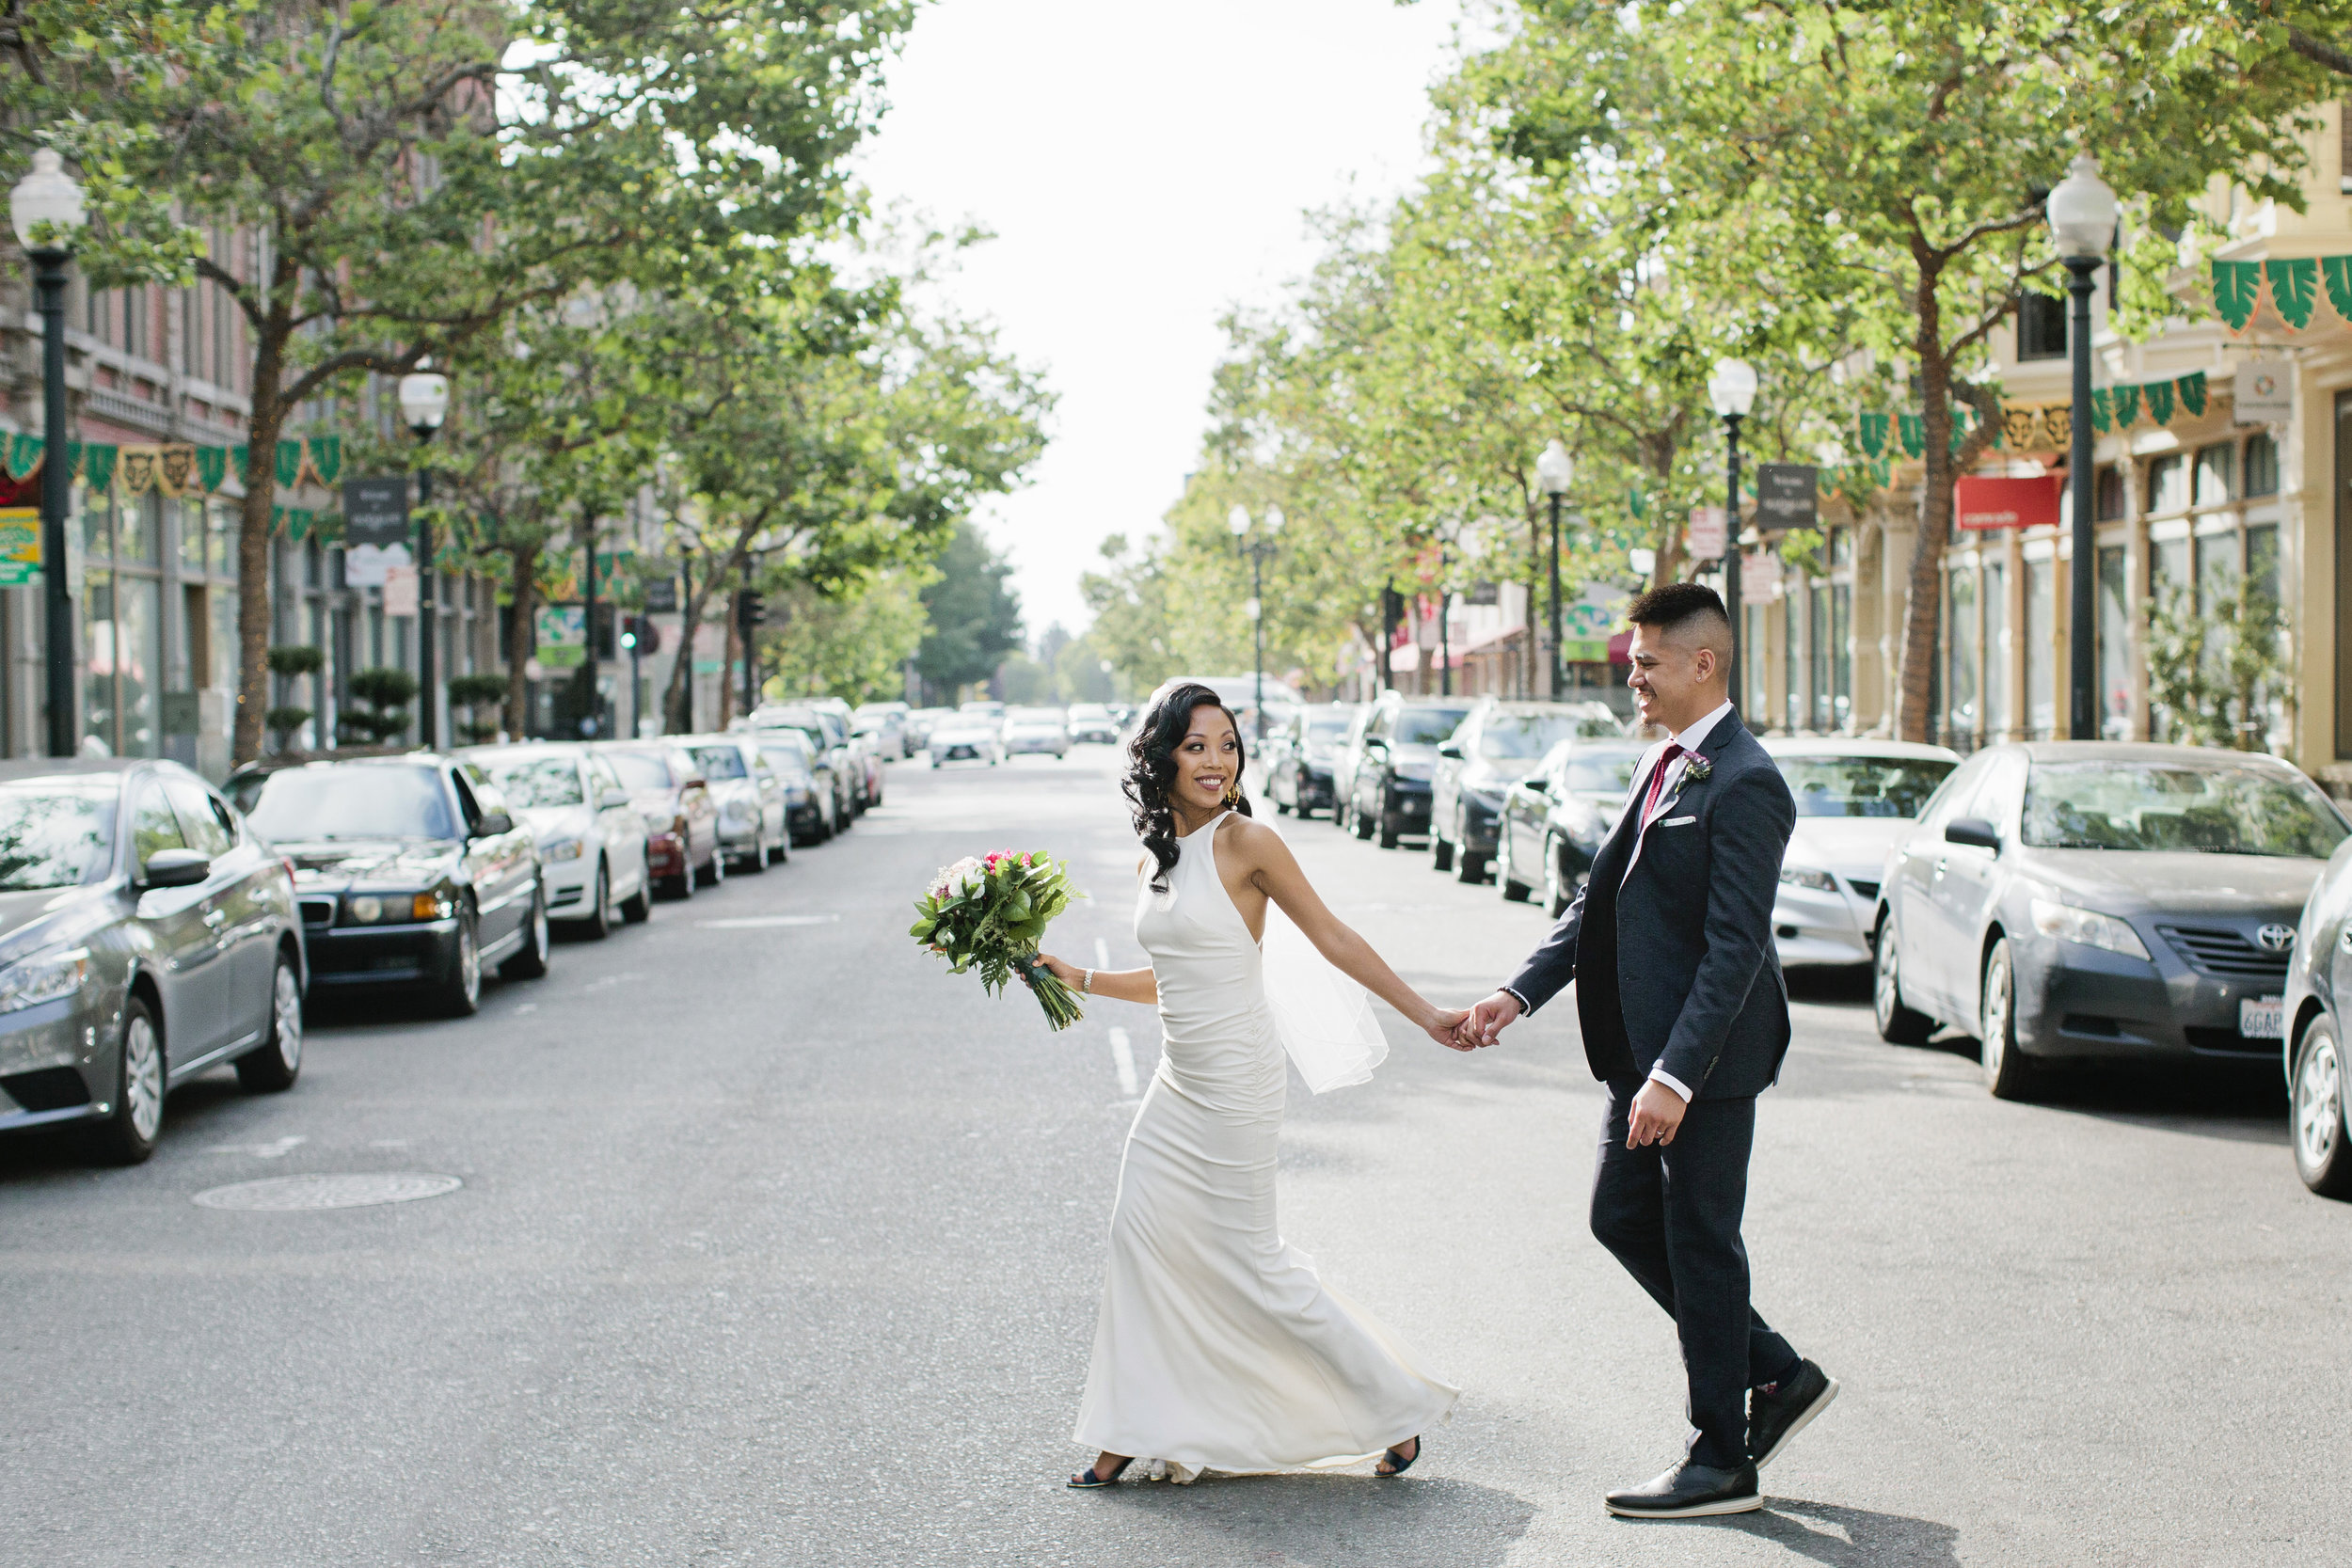 We scouted with Holly and Jonathon before their wedding to find portrait spots for them in downtown Oakland.